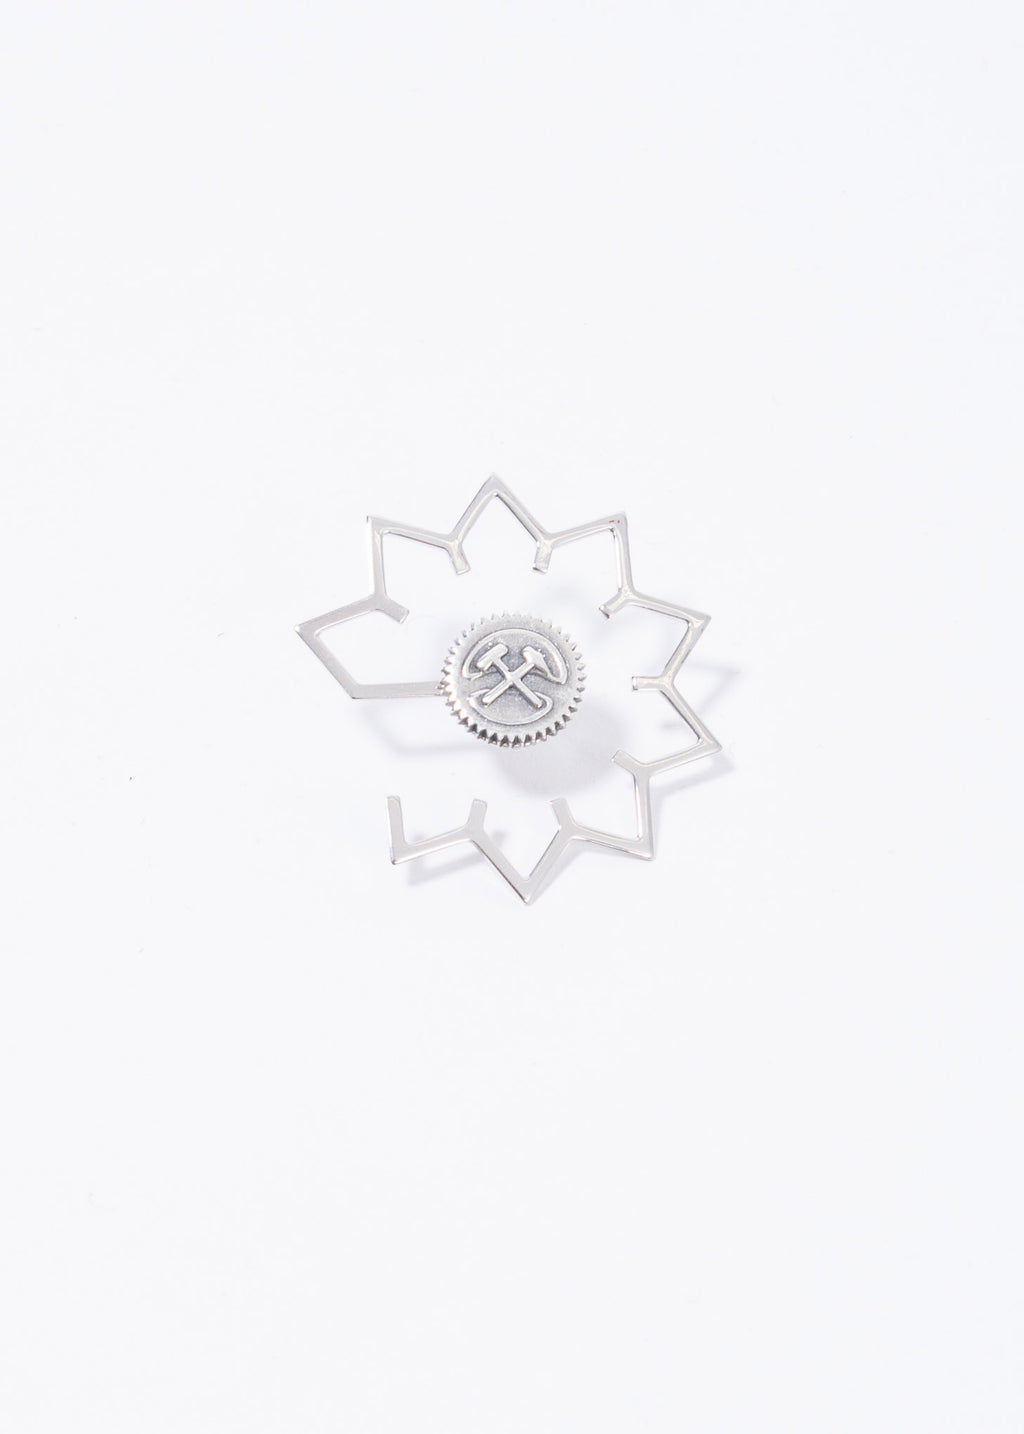 Silver Earring with COG Ear Cuff (Single)